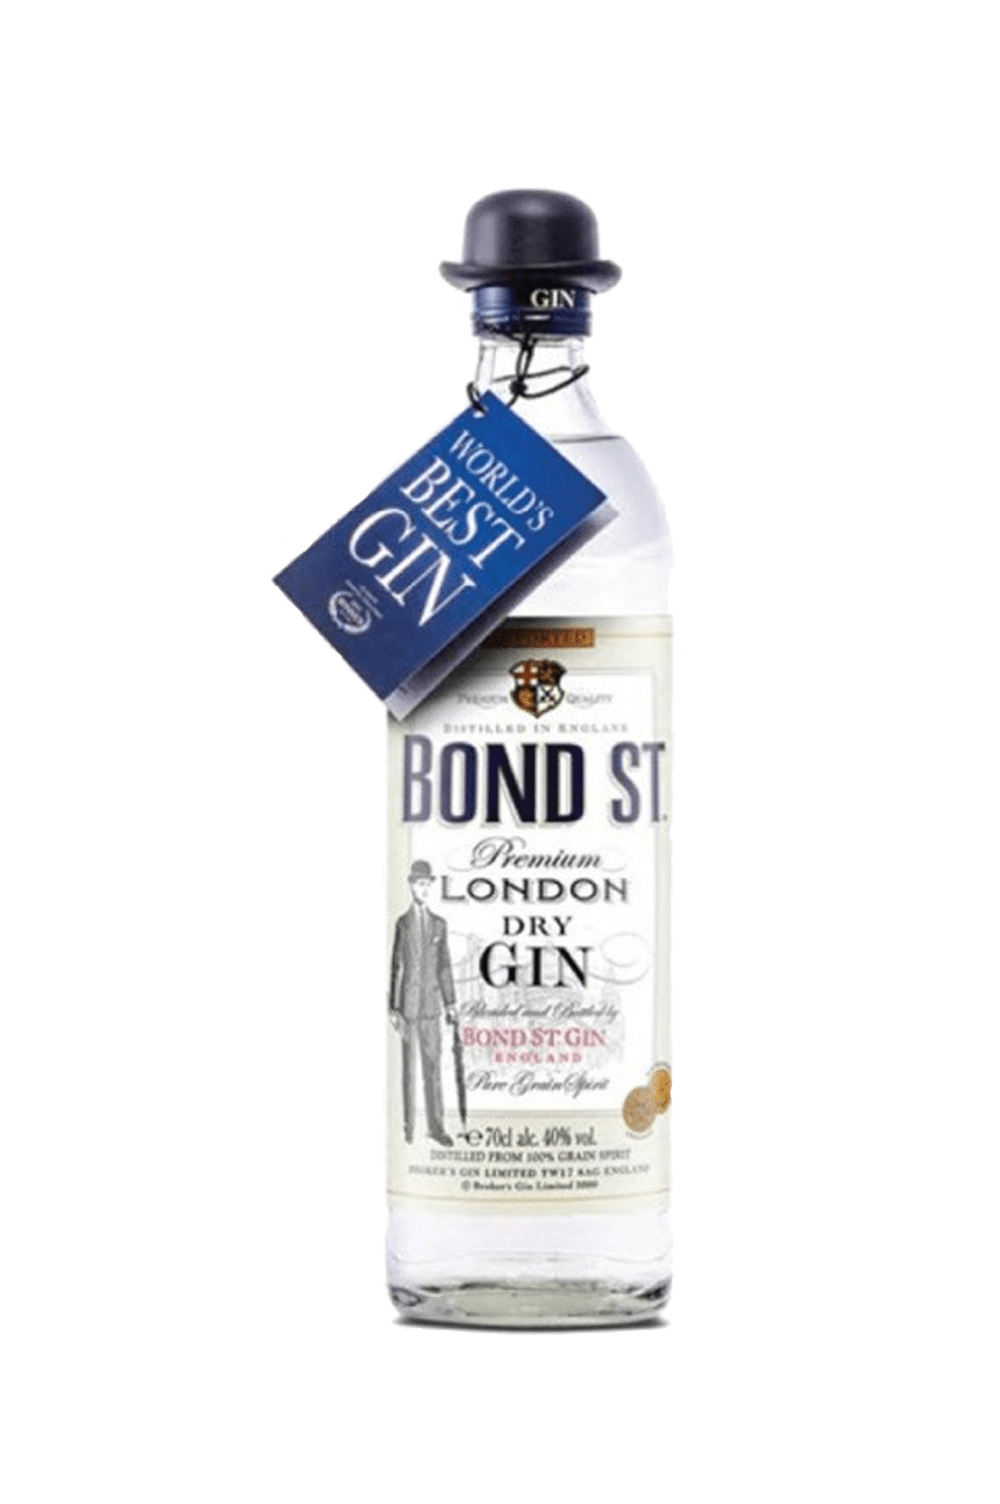 Bond St. Premium London Dry Gin 47